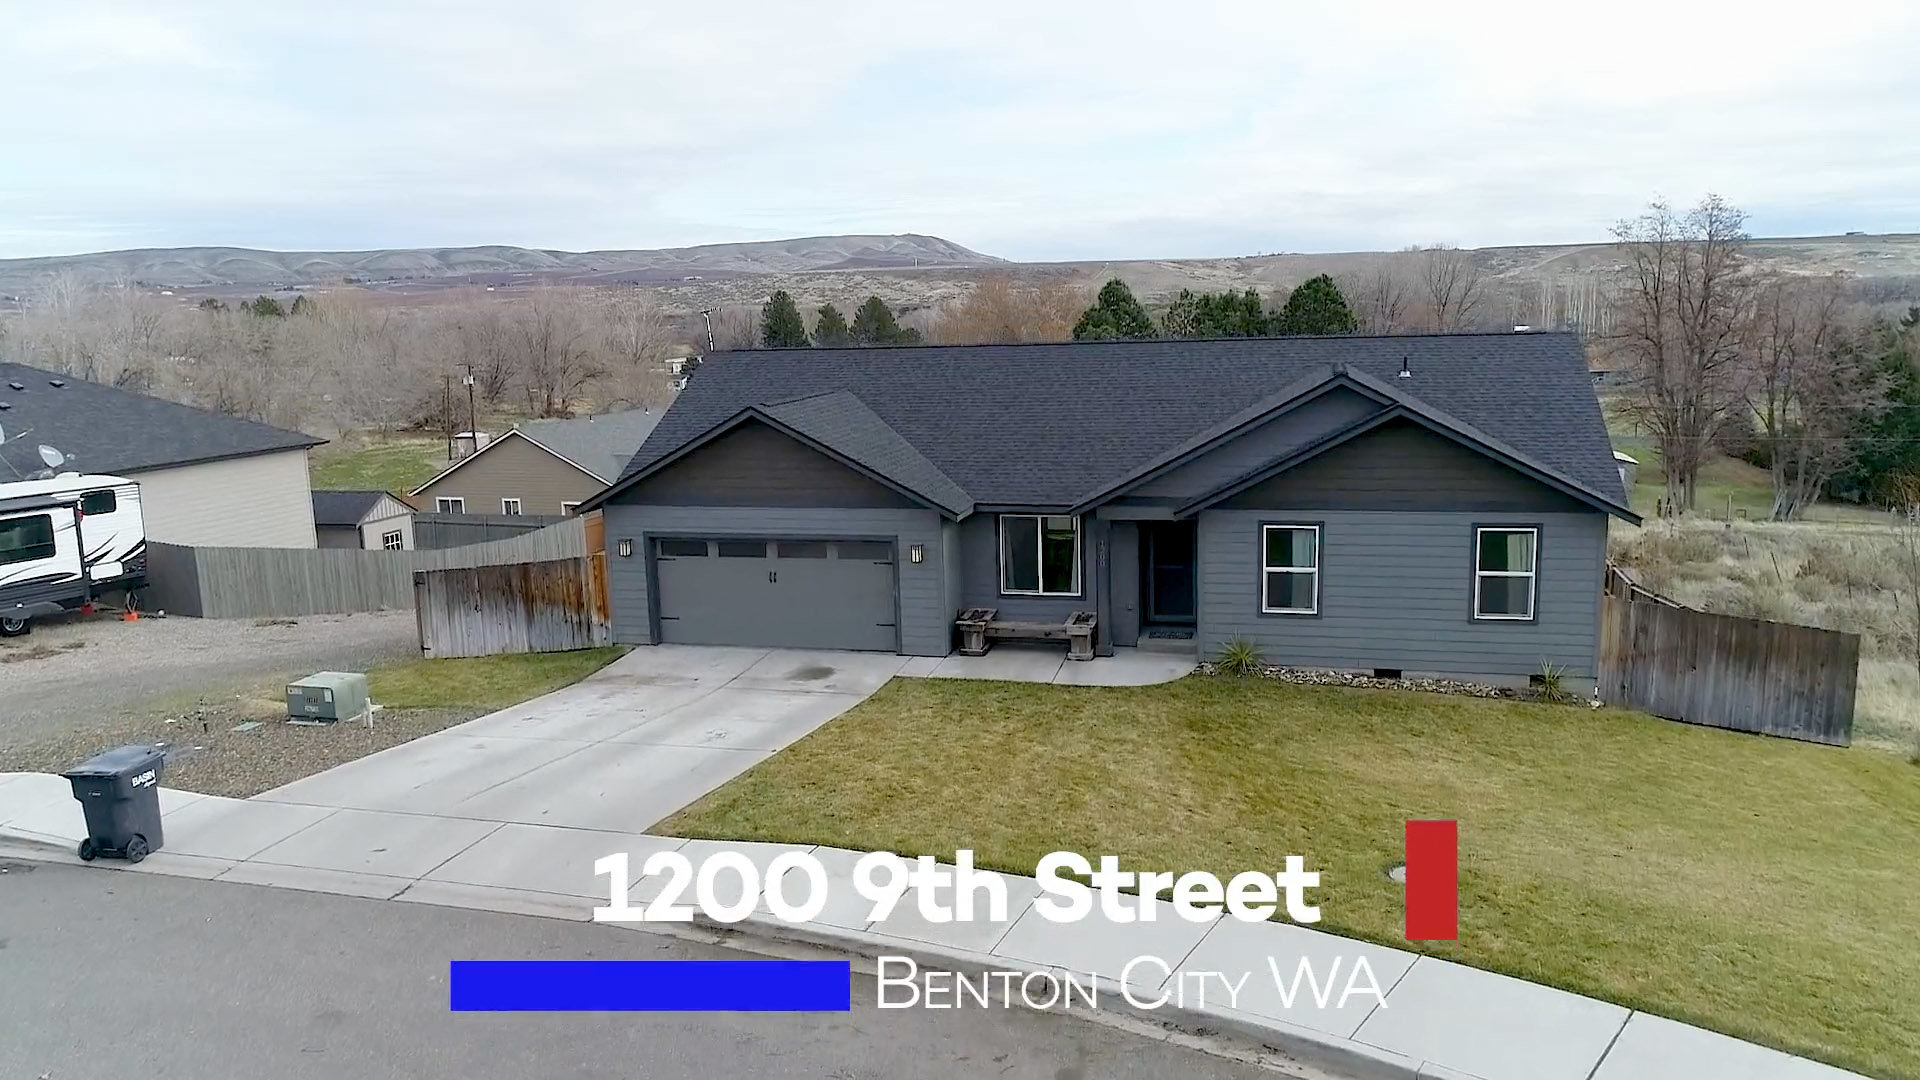 1200 9th Street Benton City Wa Home for Sale